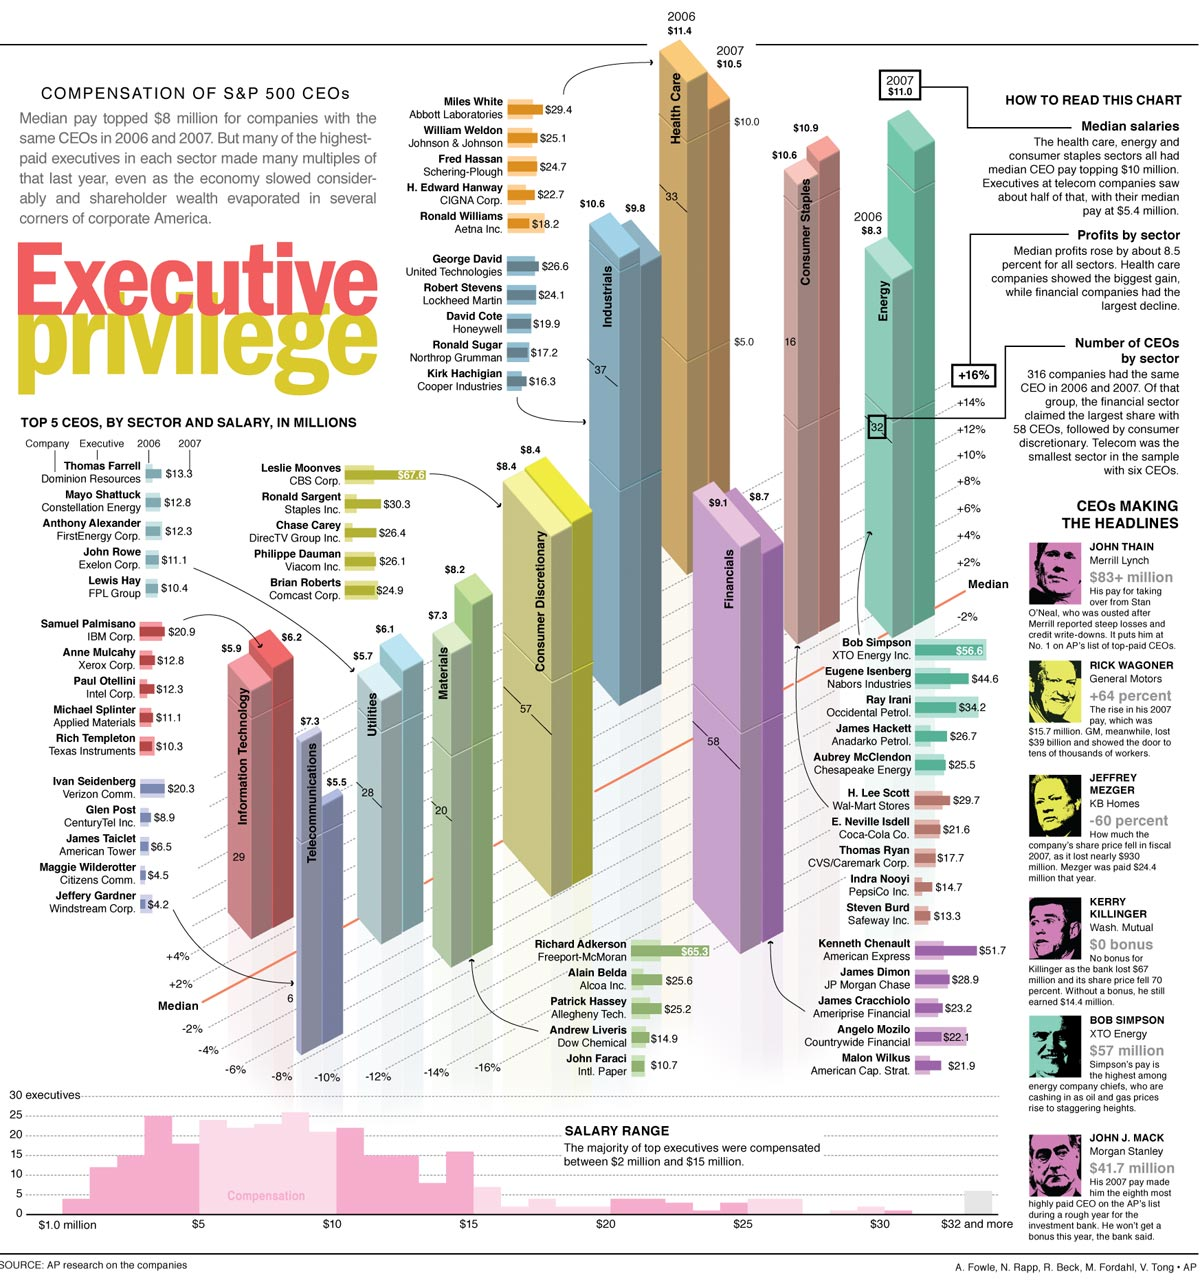 Executive Compensation: Executive Compensation Design